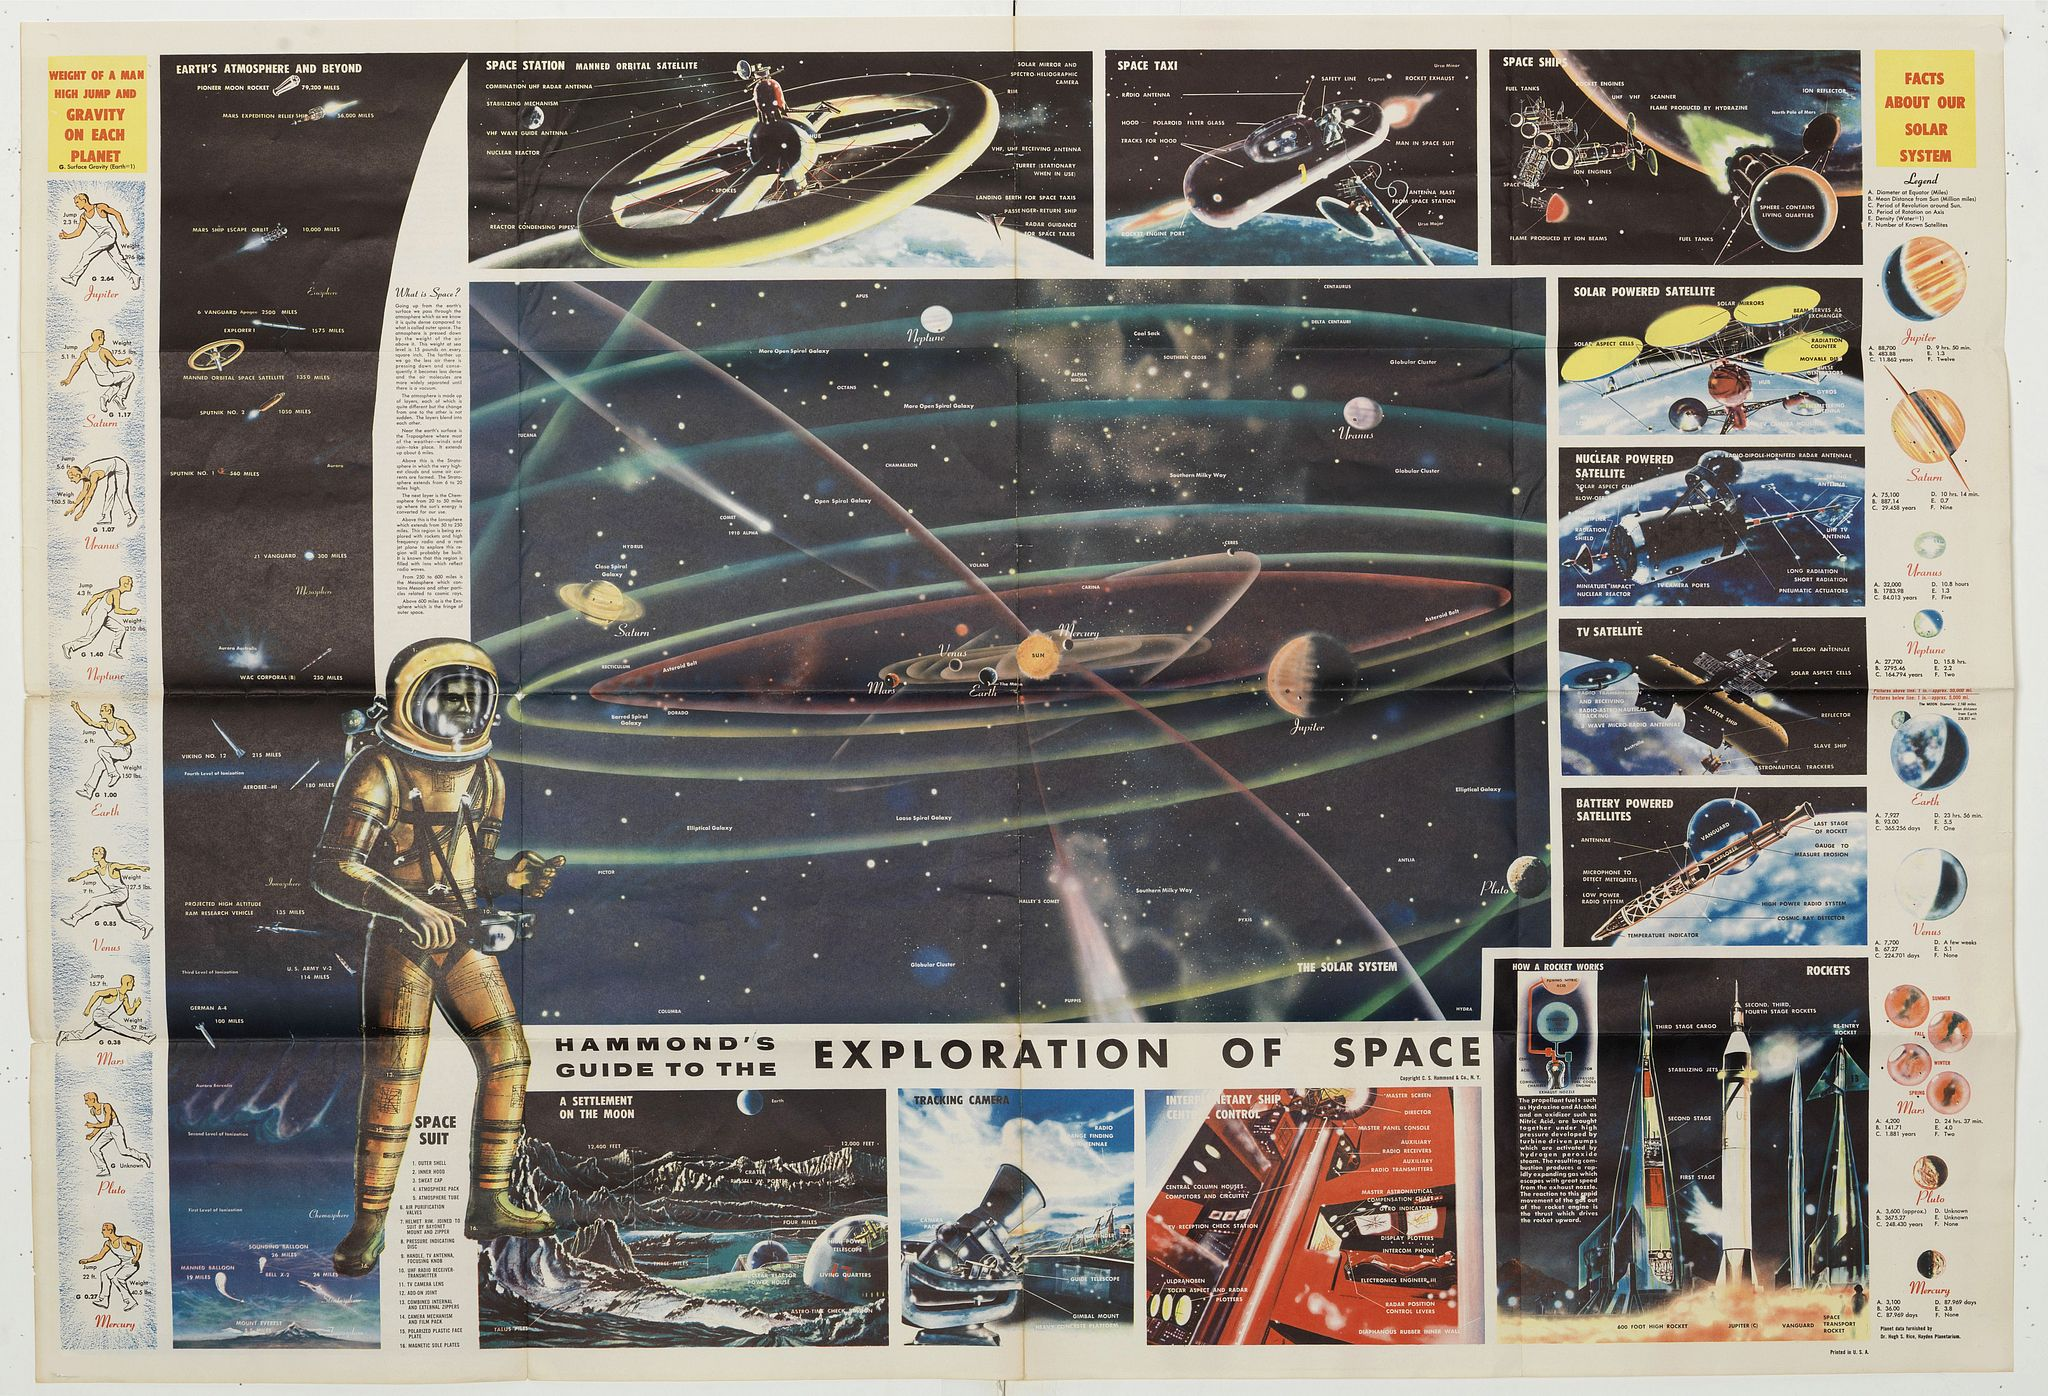 HAMMOND, C.S. & CO. -  Hammond's guide to the exploration of space.